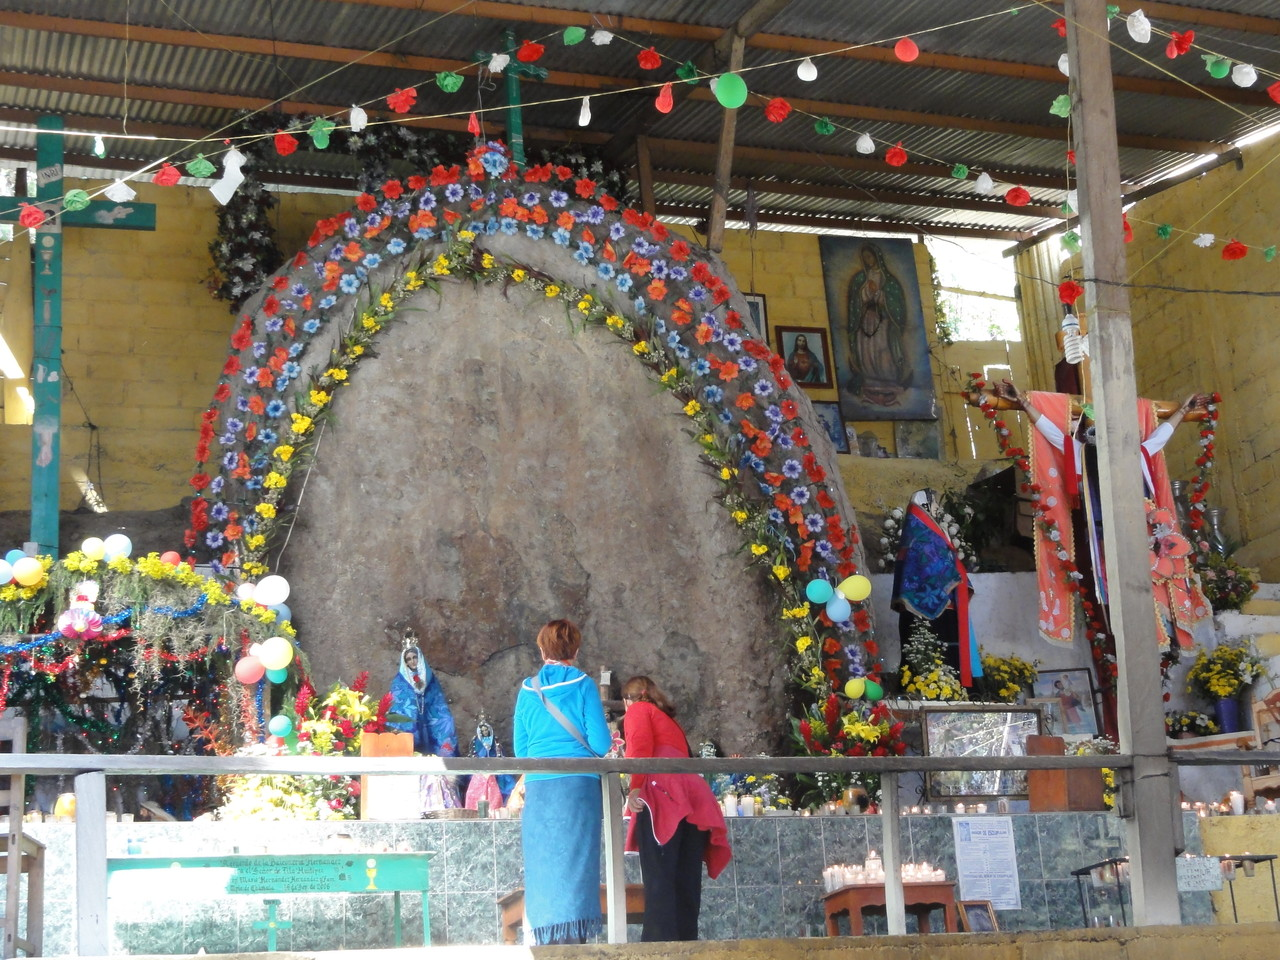 the Huitepec stone with the appearance of the Virgin/